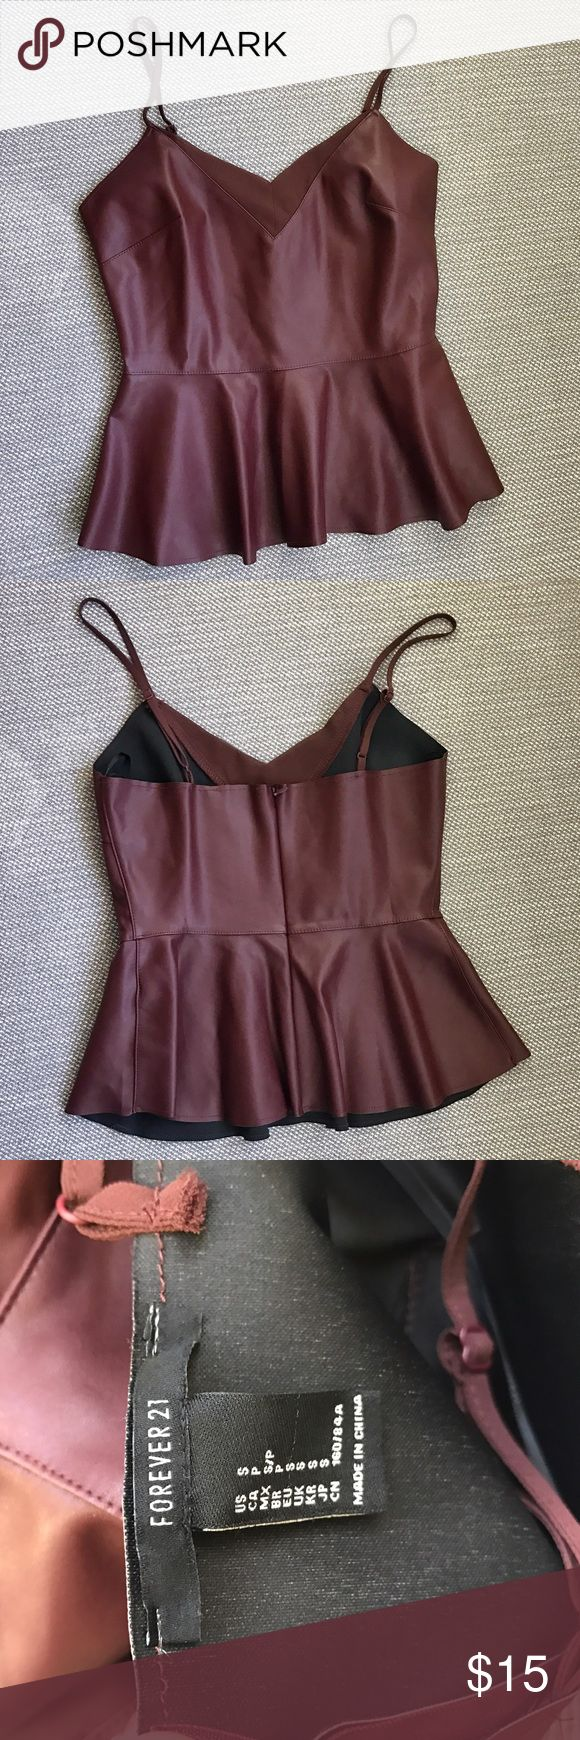 Maroon leather peplum top Faux leather maroon peplum top from Forever 21. Worn once. Very flattering and looks awesome with black pants and heels! Forever 21 Tops Tank Tops